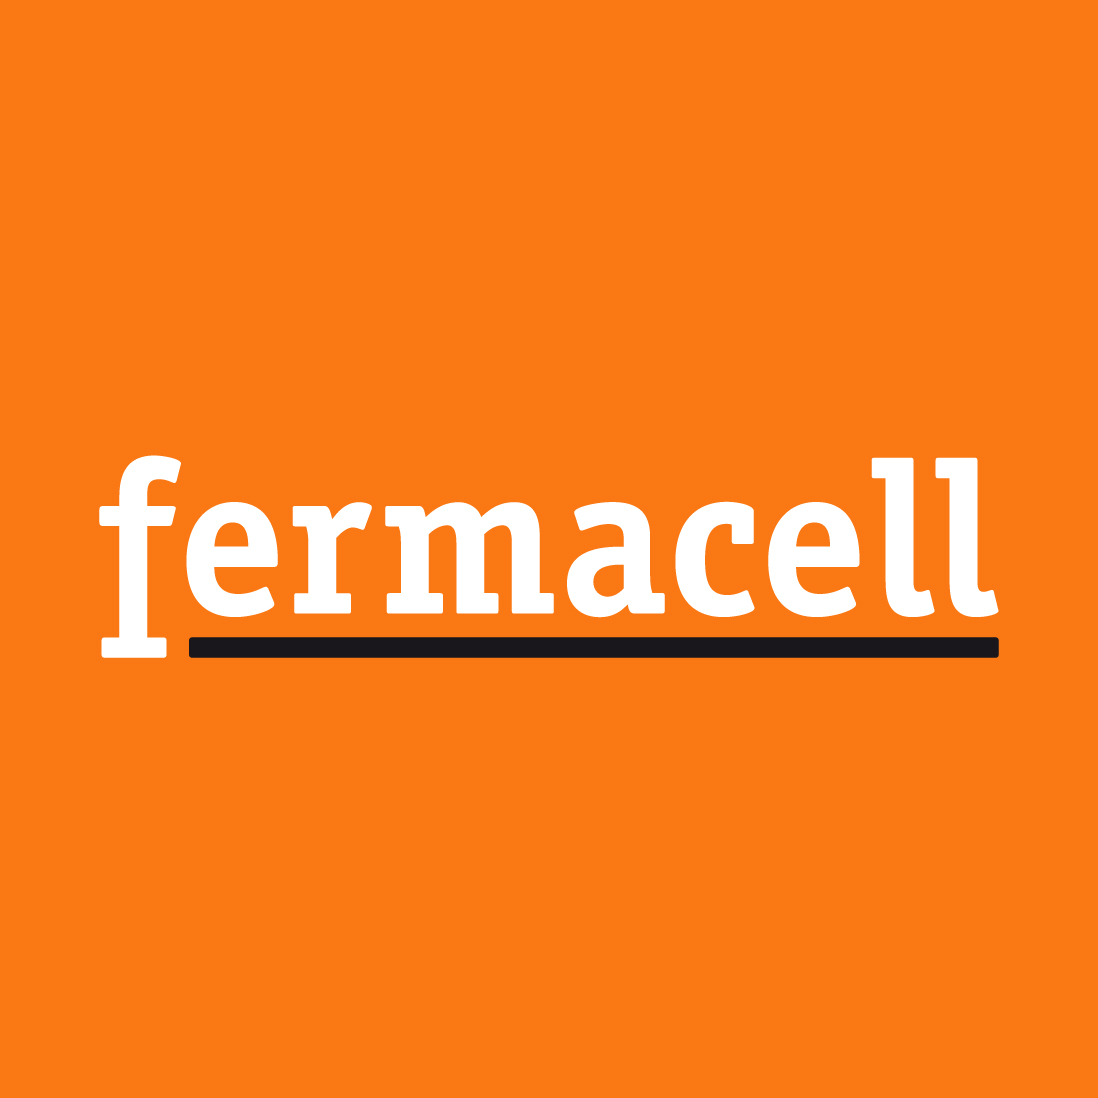 logo-fermacell-orange